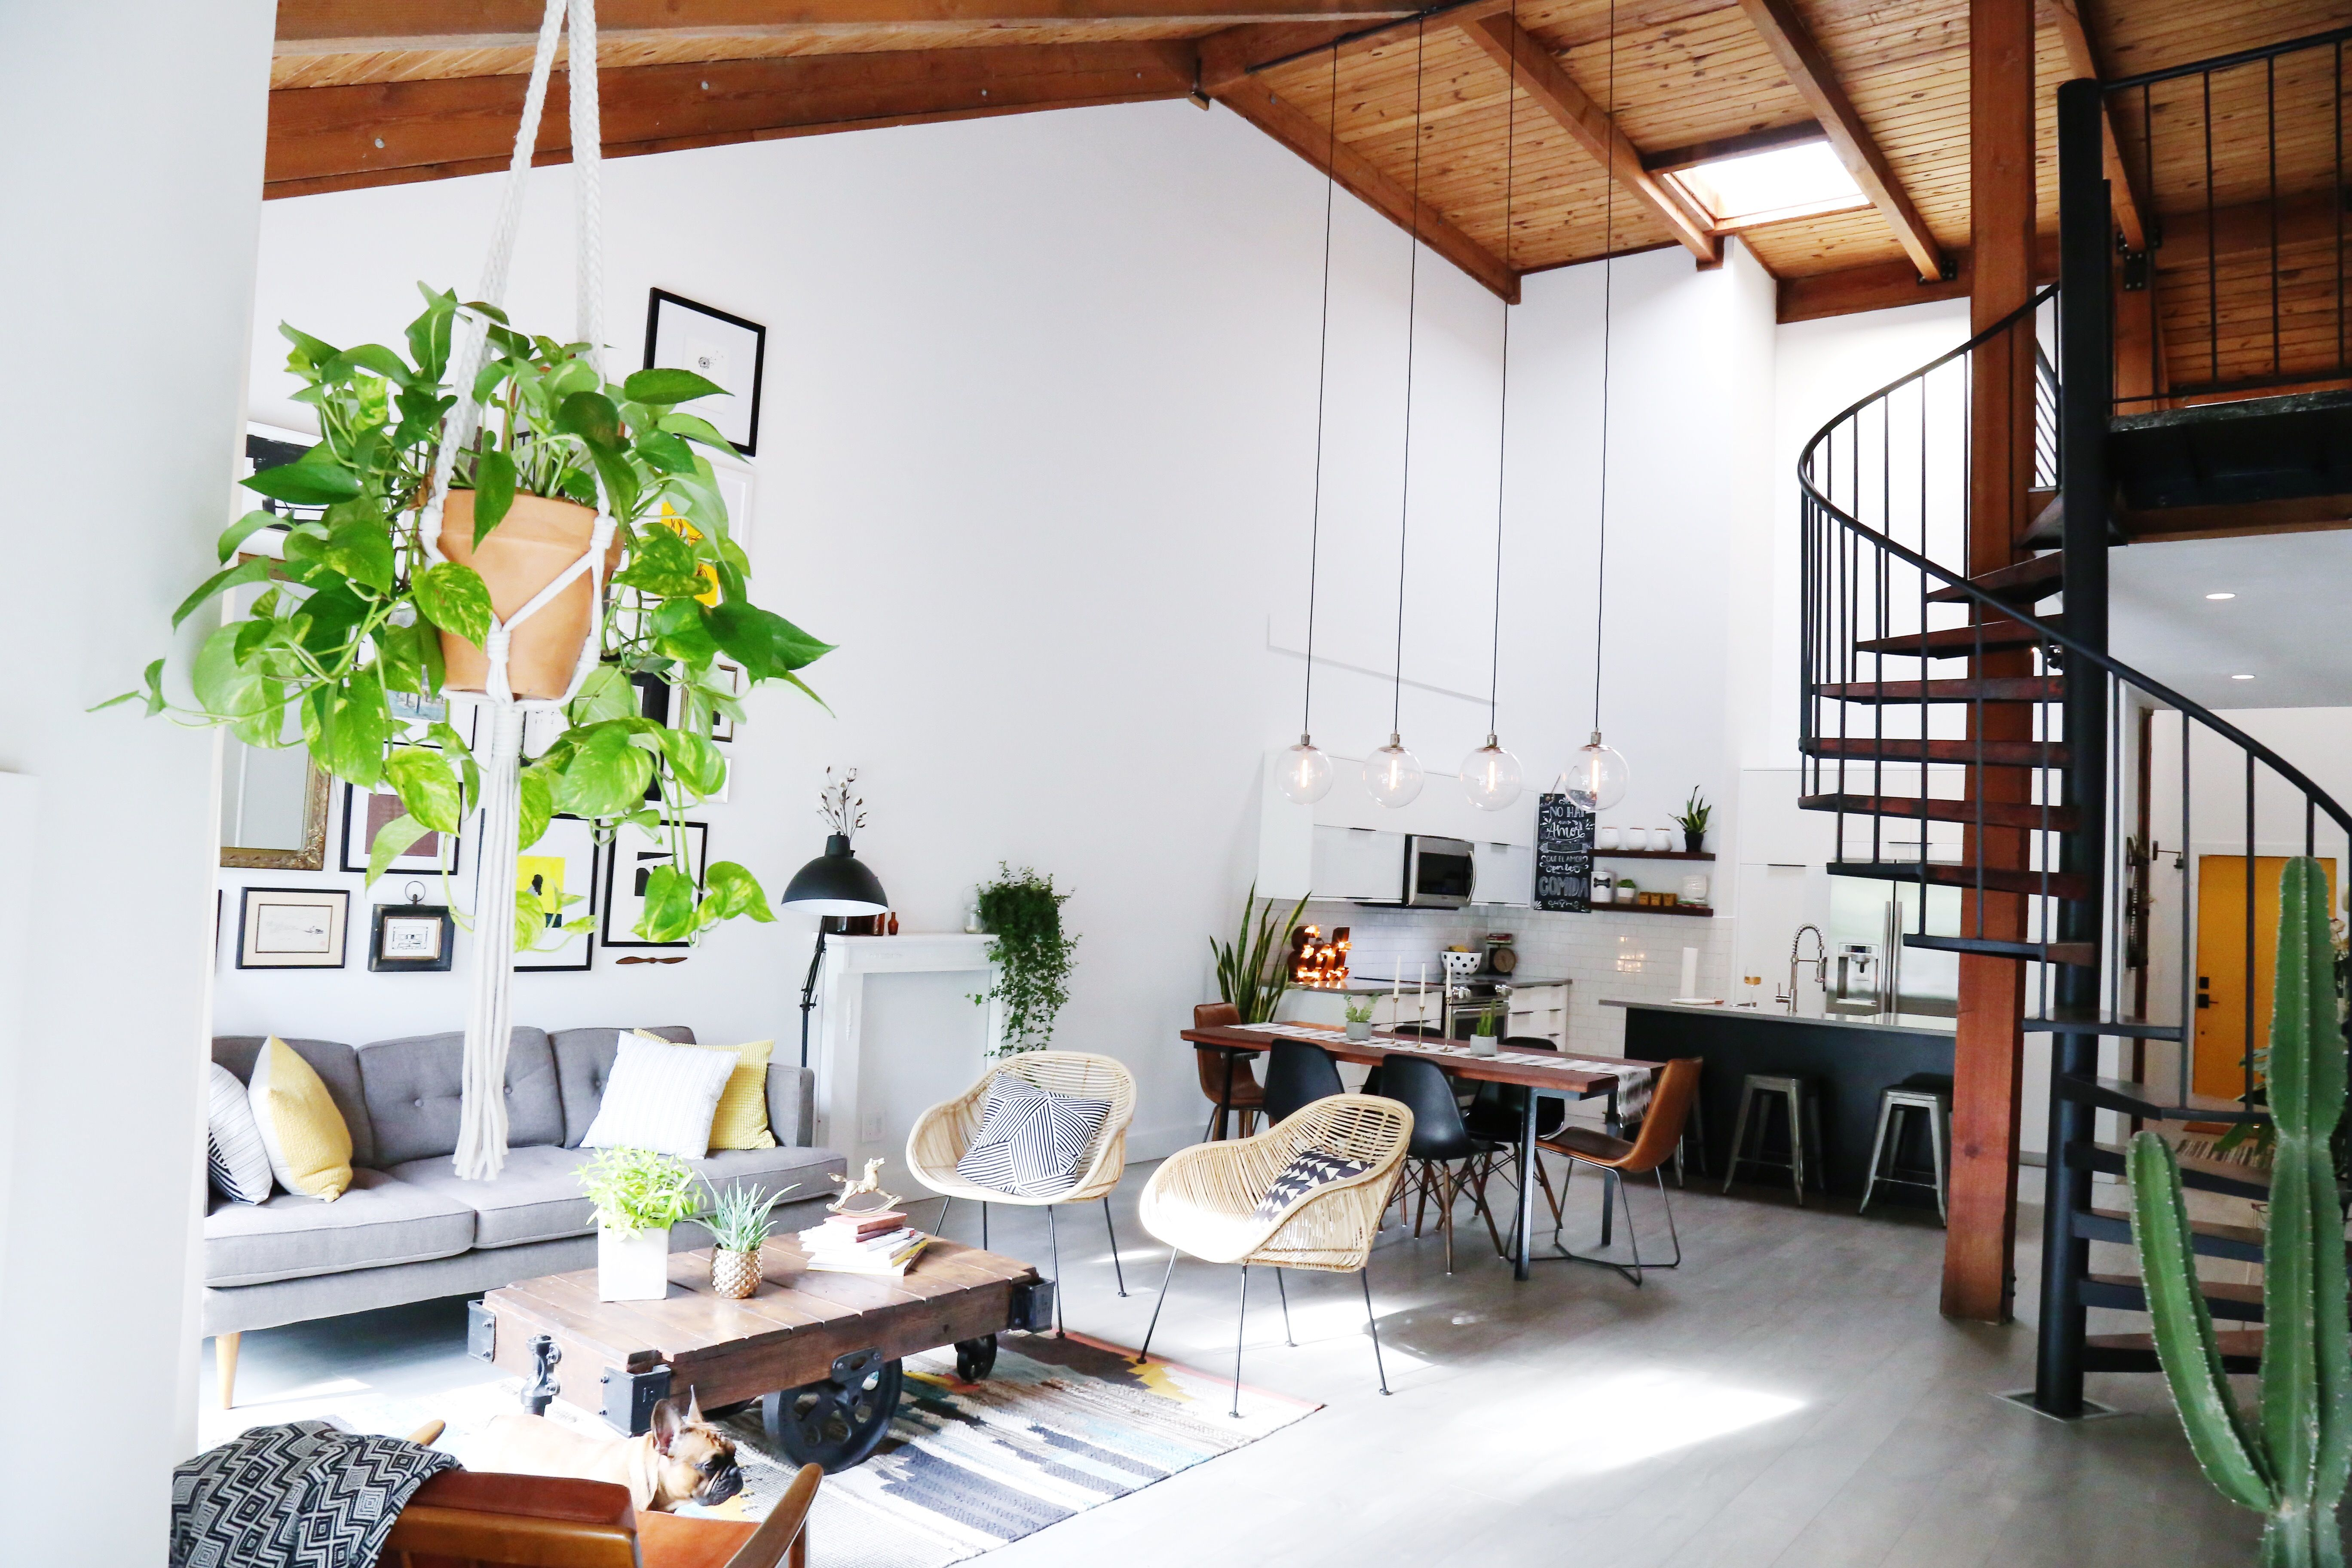 Industrial Mid Century Modern Bright And Airy Livingroom With High Ceilings Metal Spiral Staircase And Plants Florida Home Dream House Gravity Home